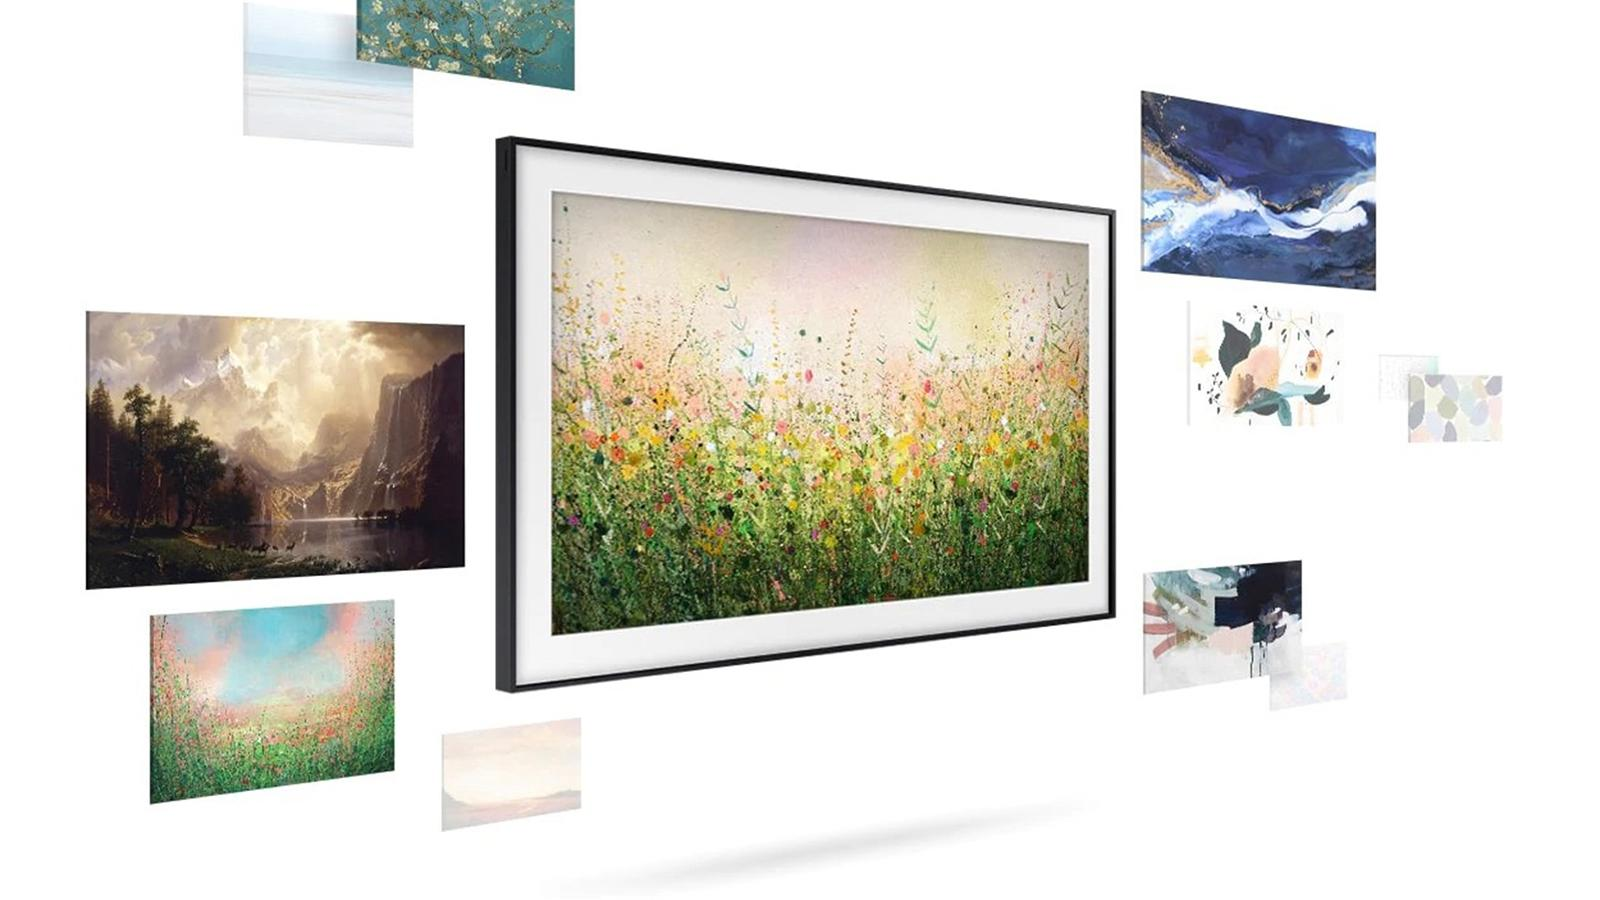 Samsung The Frame 4K QLED HDR TV (2020)